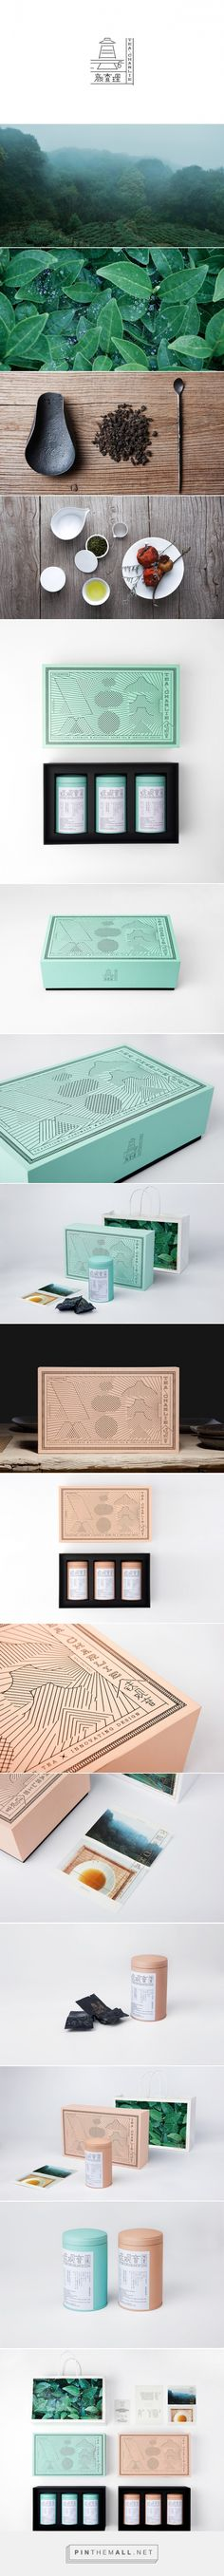 Tea Charlie packaging designed by YanYaoming - http://www.packagingoftheworld.com/2016/01/tea-charlie.html